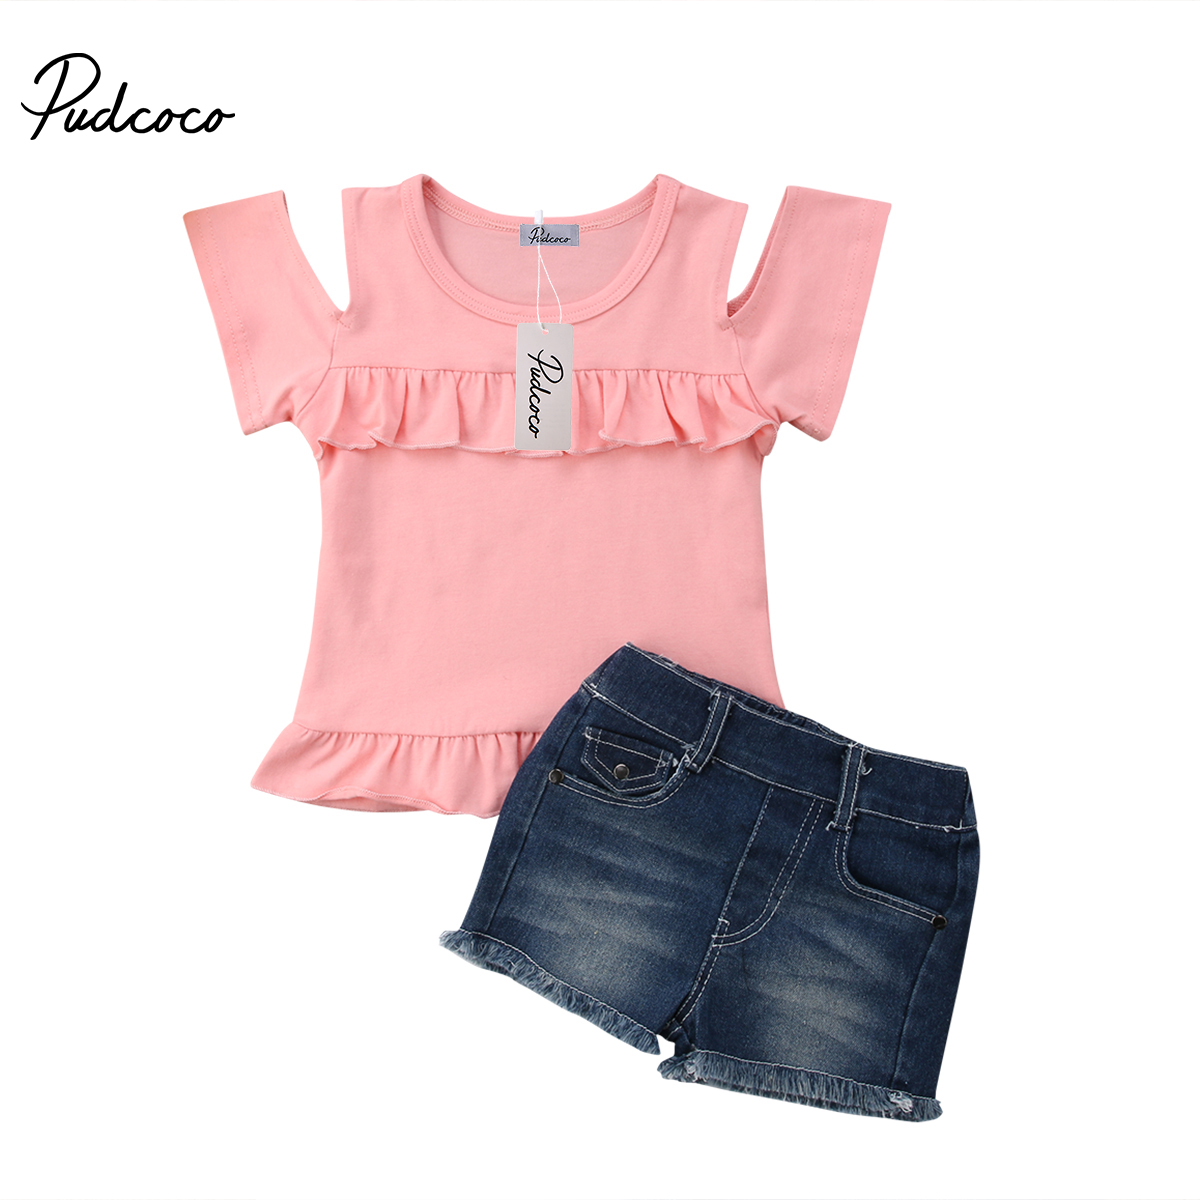 Pudcoco Toddler Girls Summer Clothing Set Casual Off Shoulder T-shirt+Shorts Denim Pants Kids Children Clothes Outfits 2pcs 2pcs children outfit clothes kids baby girl off shoulder cotton ruffled sleeve tops striped t shirt blue denim jeans sunsuit set